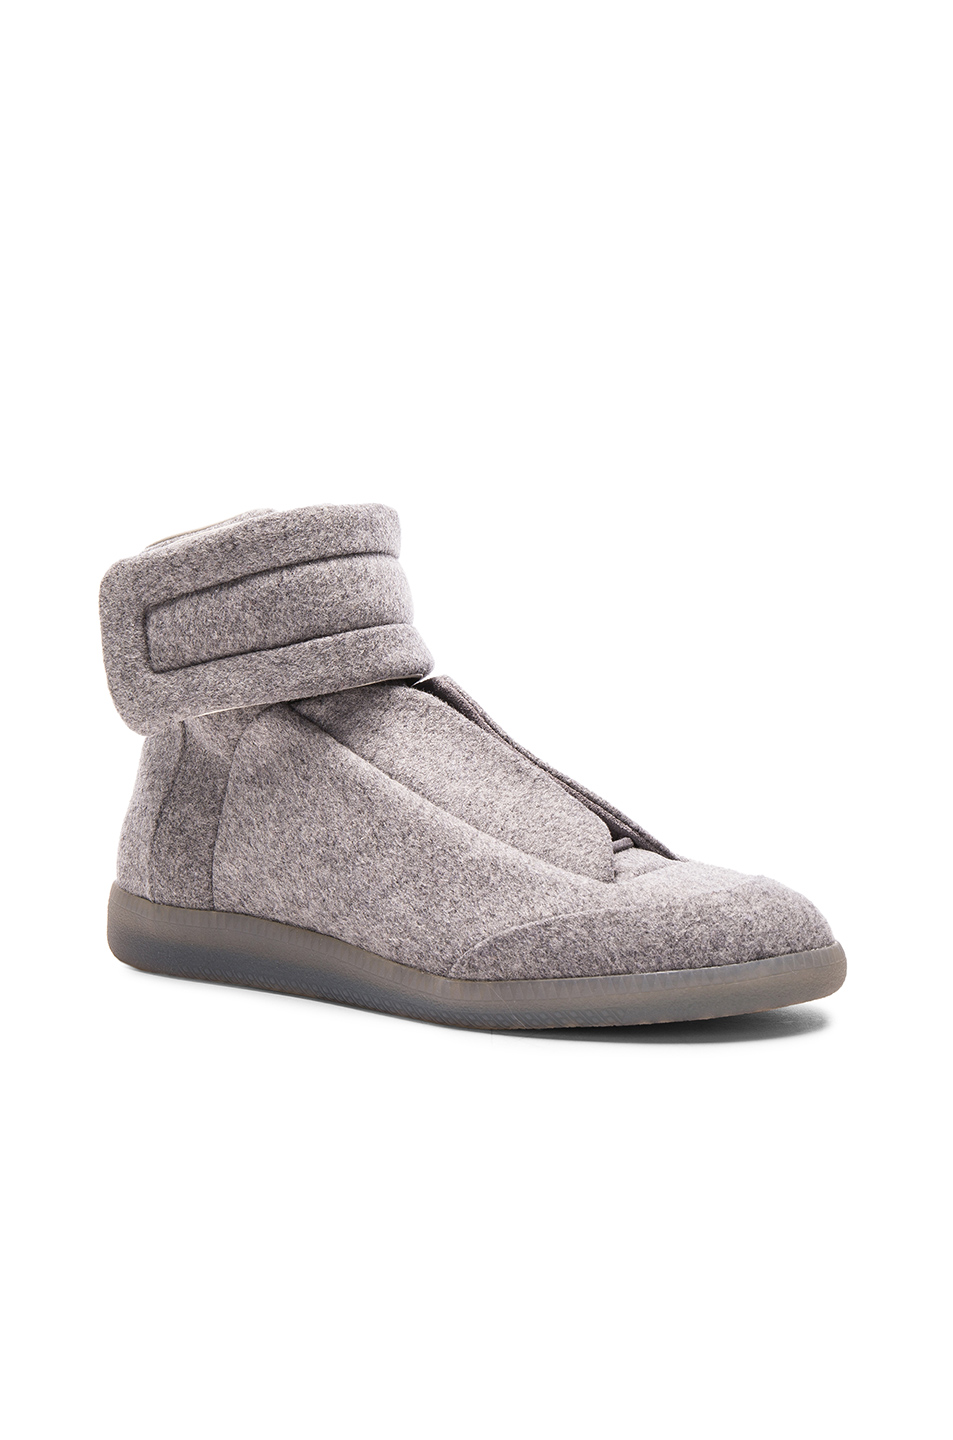 Maison Margiela Future High Tops in Gray